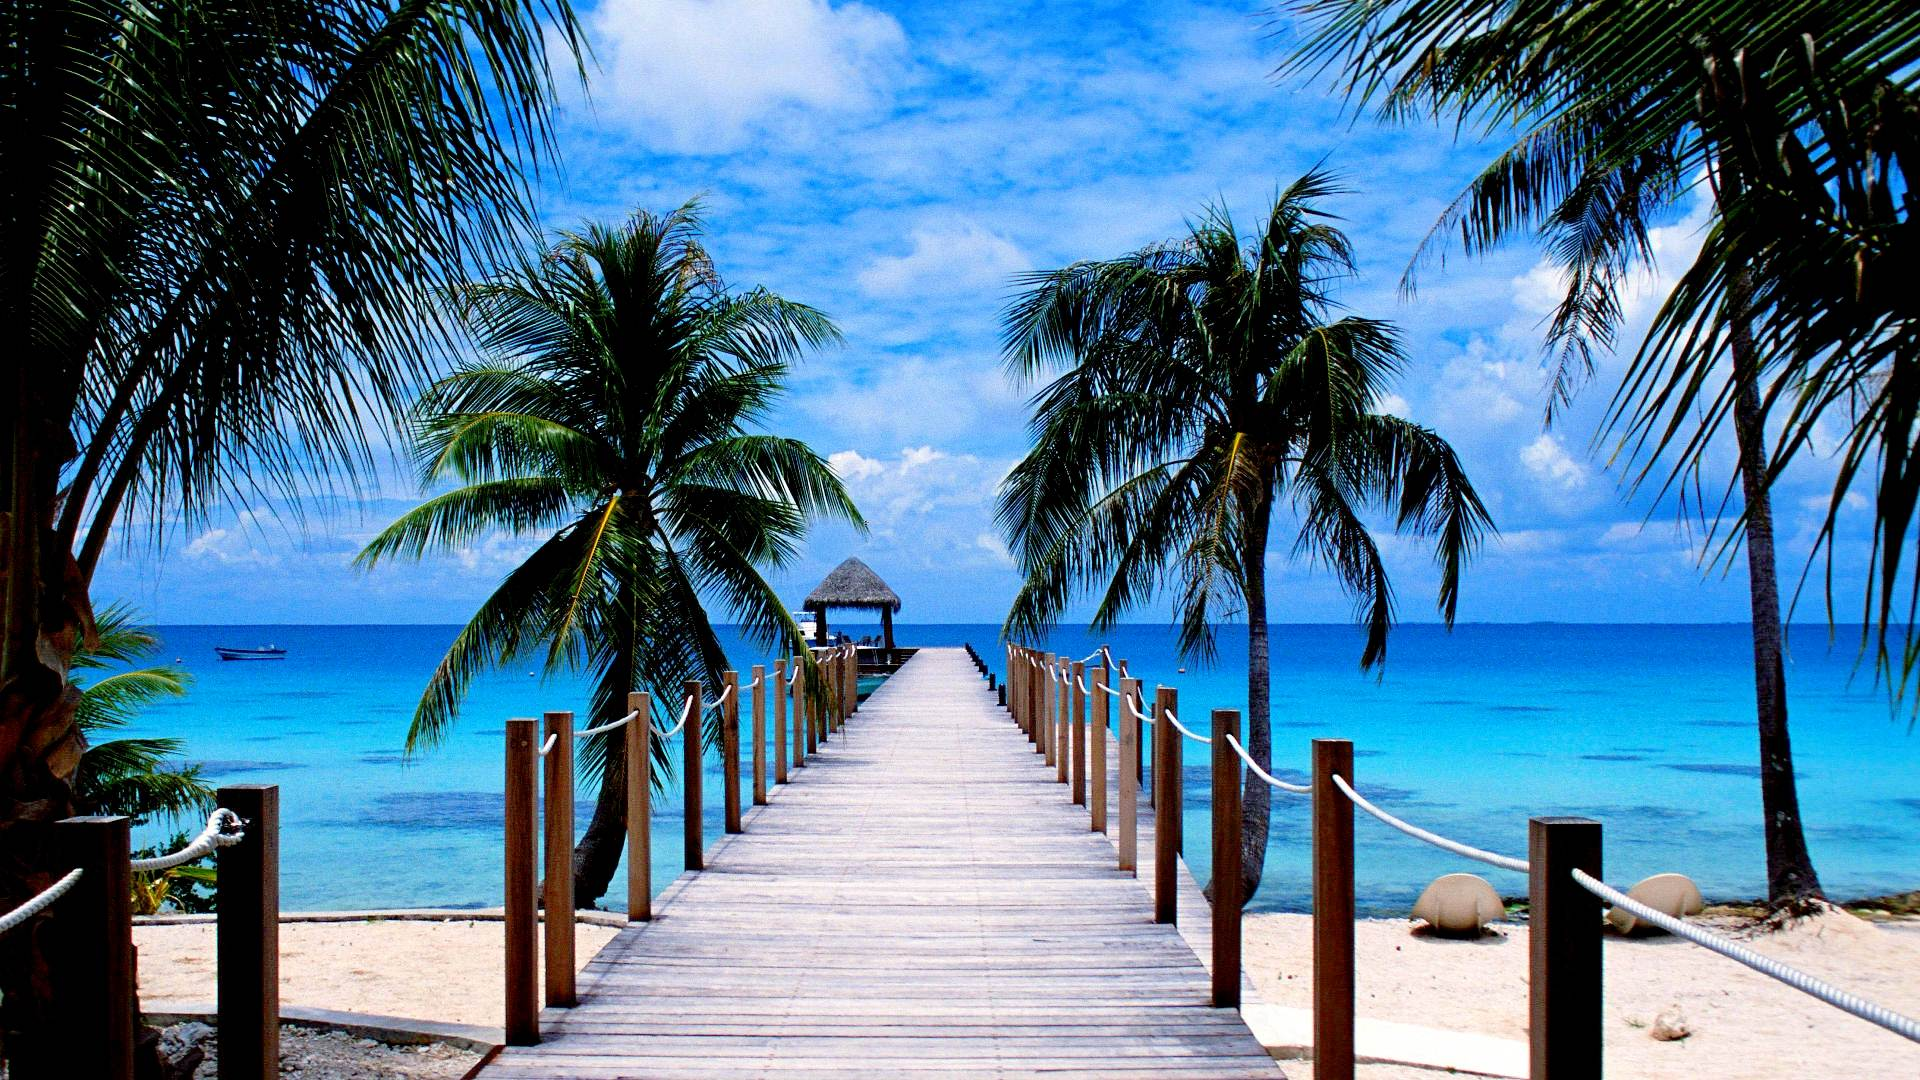 Tropical Beach Paradise Wallpaper High Quality 1920x1080